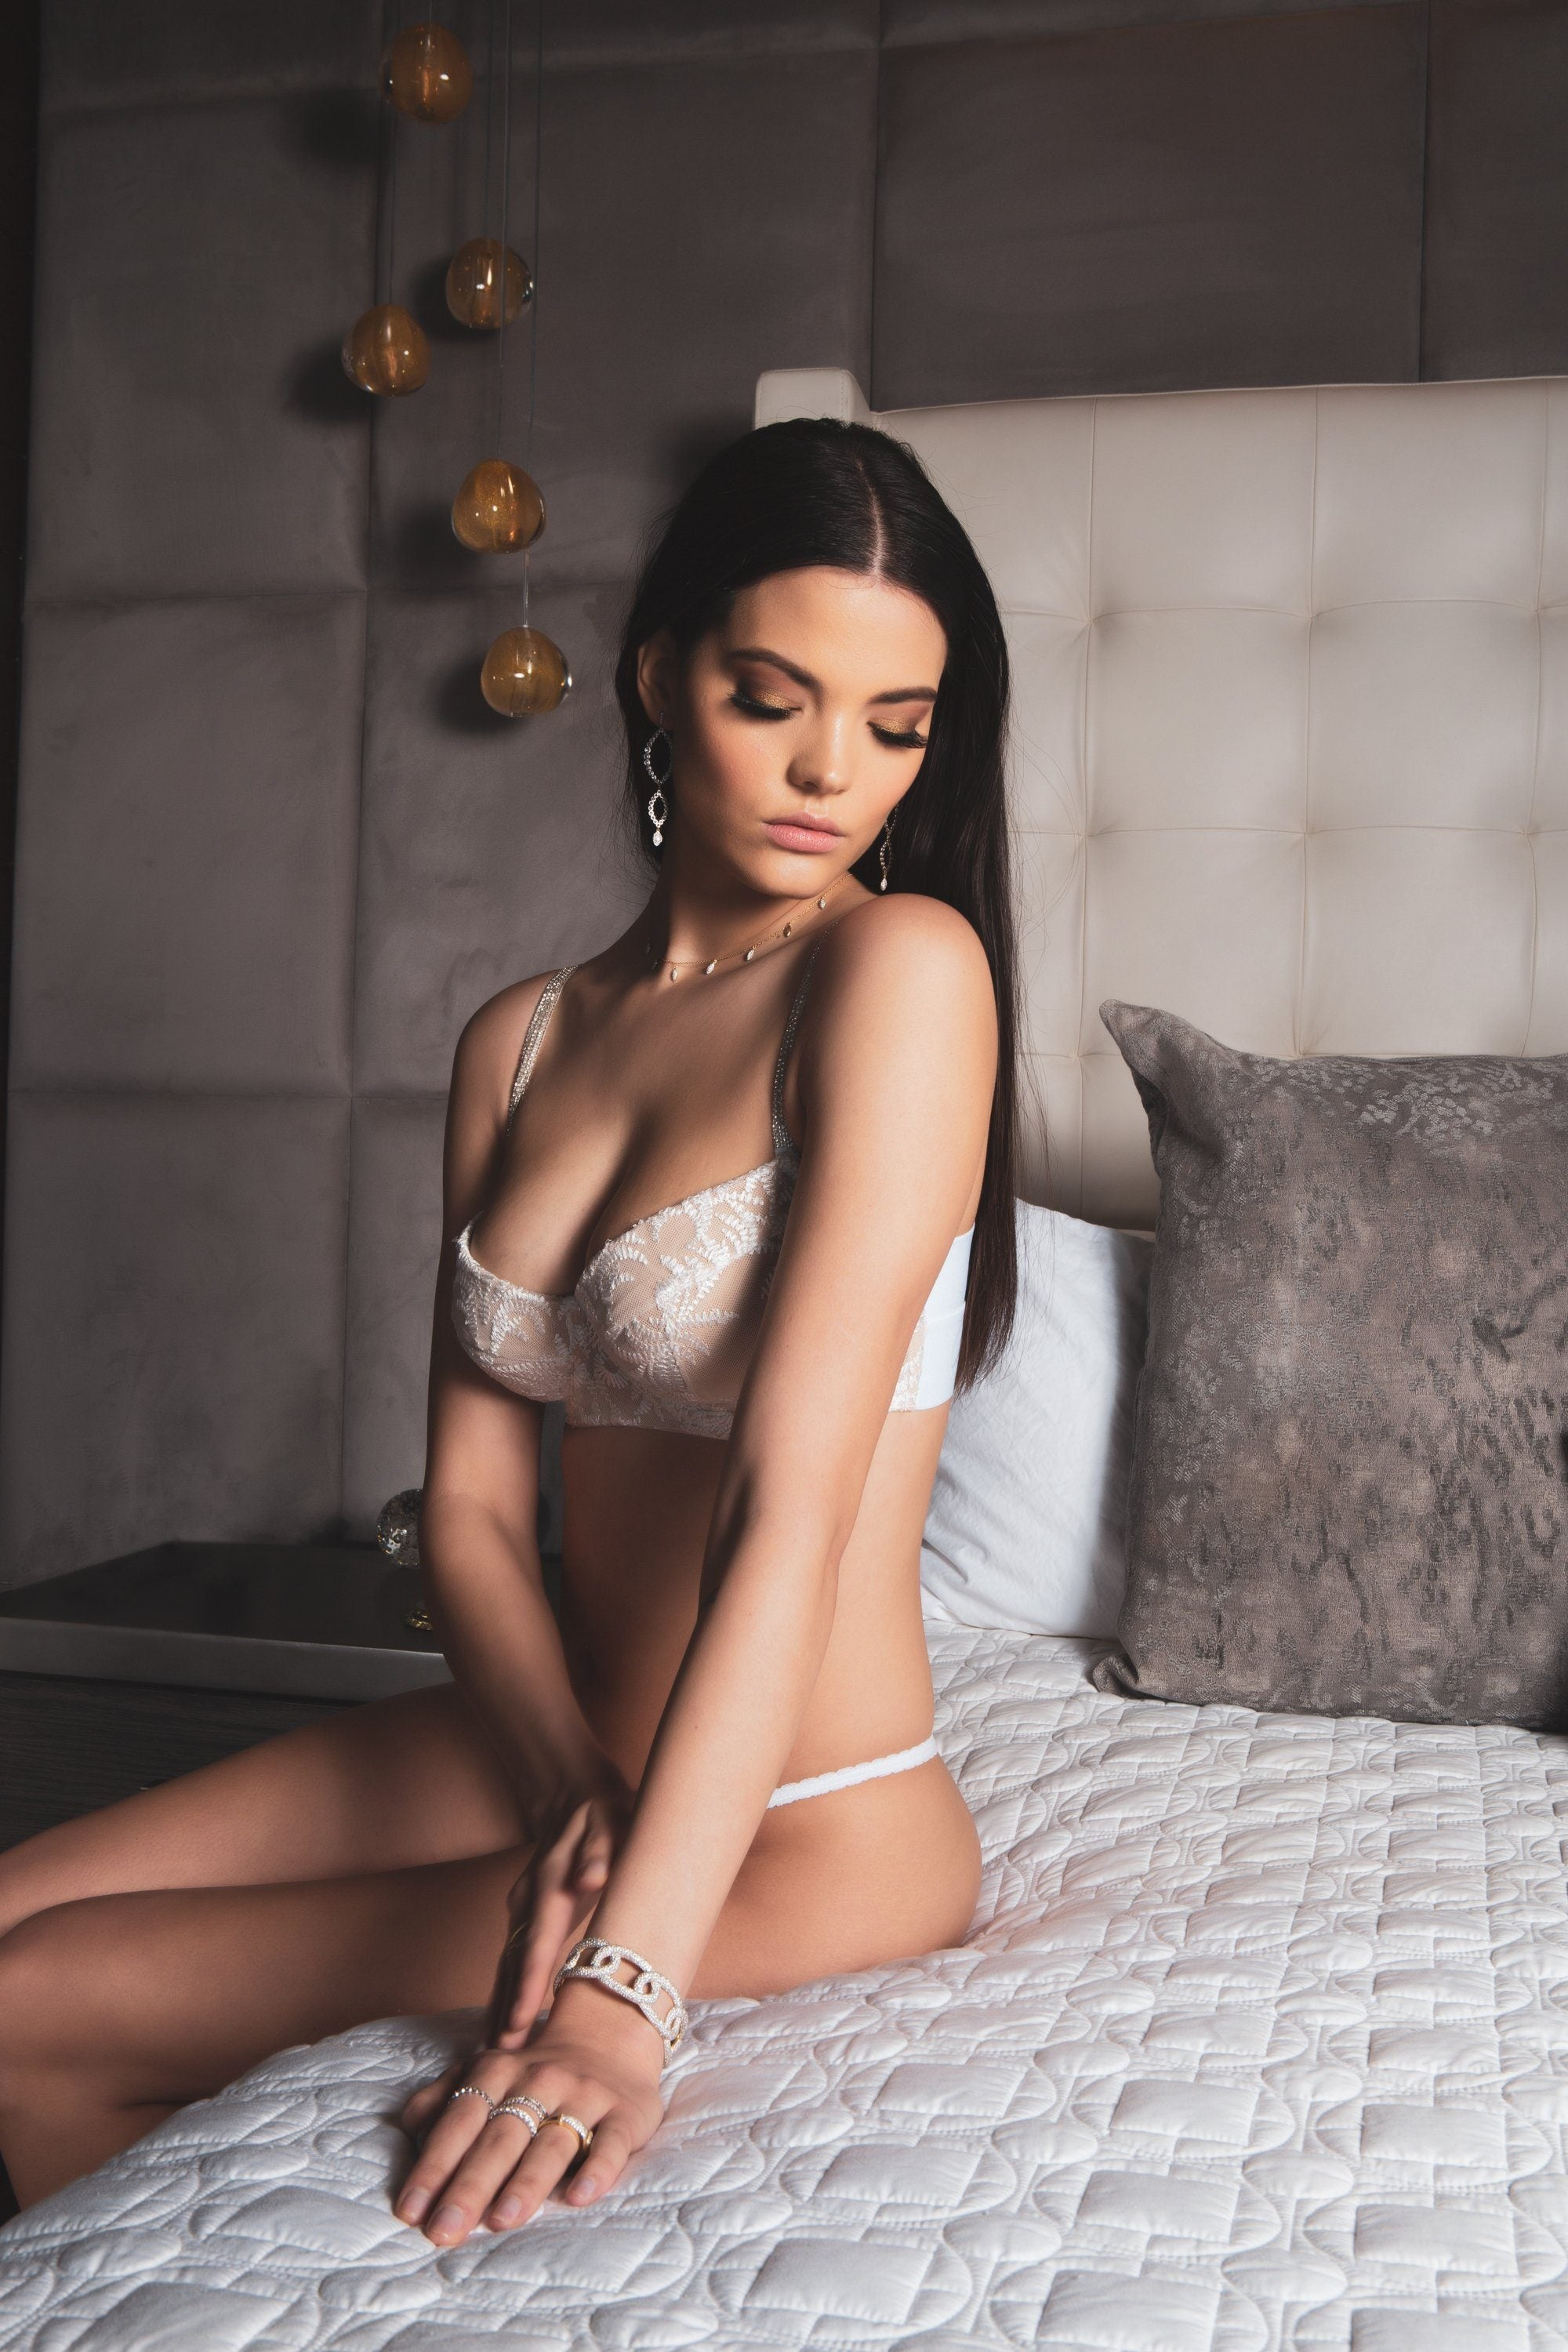 woman wearing white lace bra and panty on bed